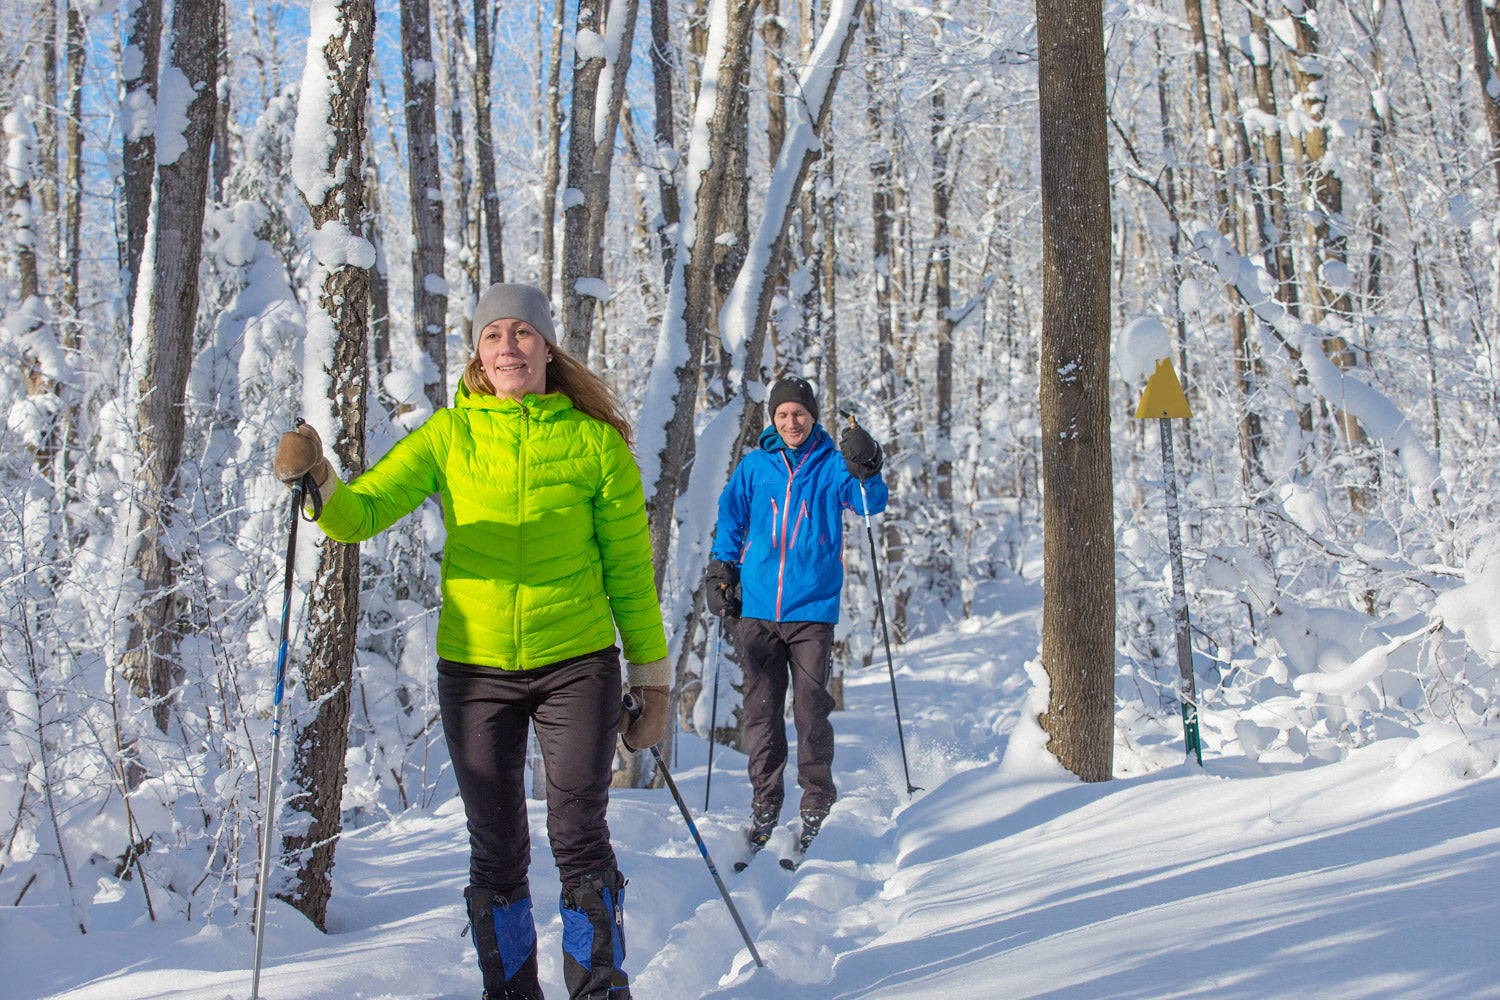 Young couple ski through a snow covered forest on nordic skis